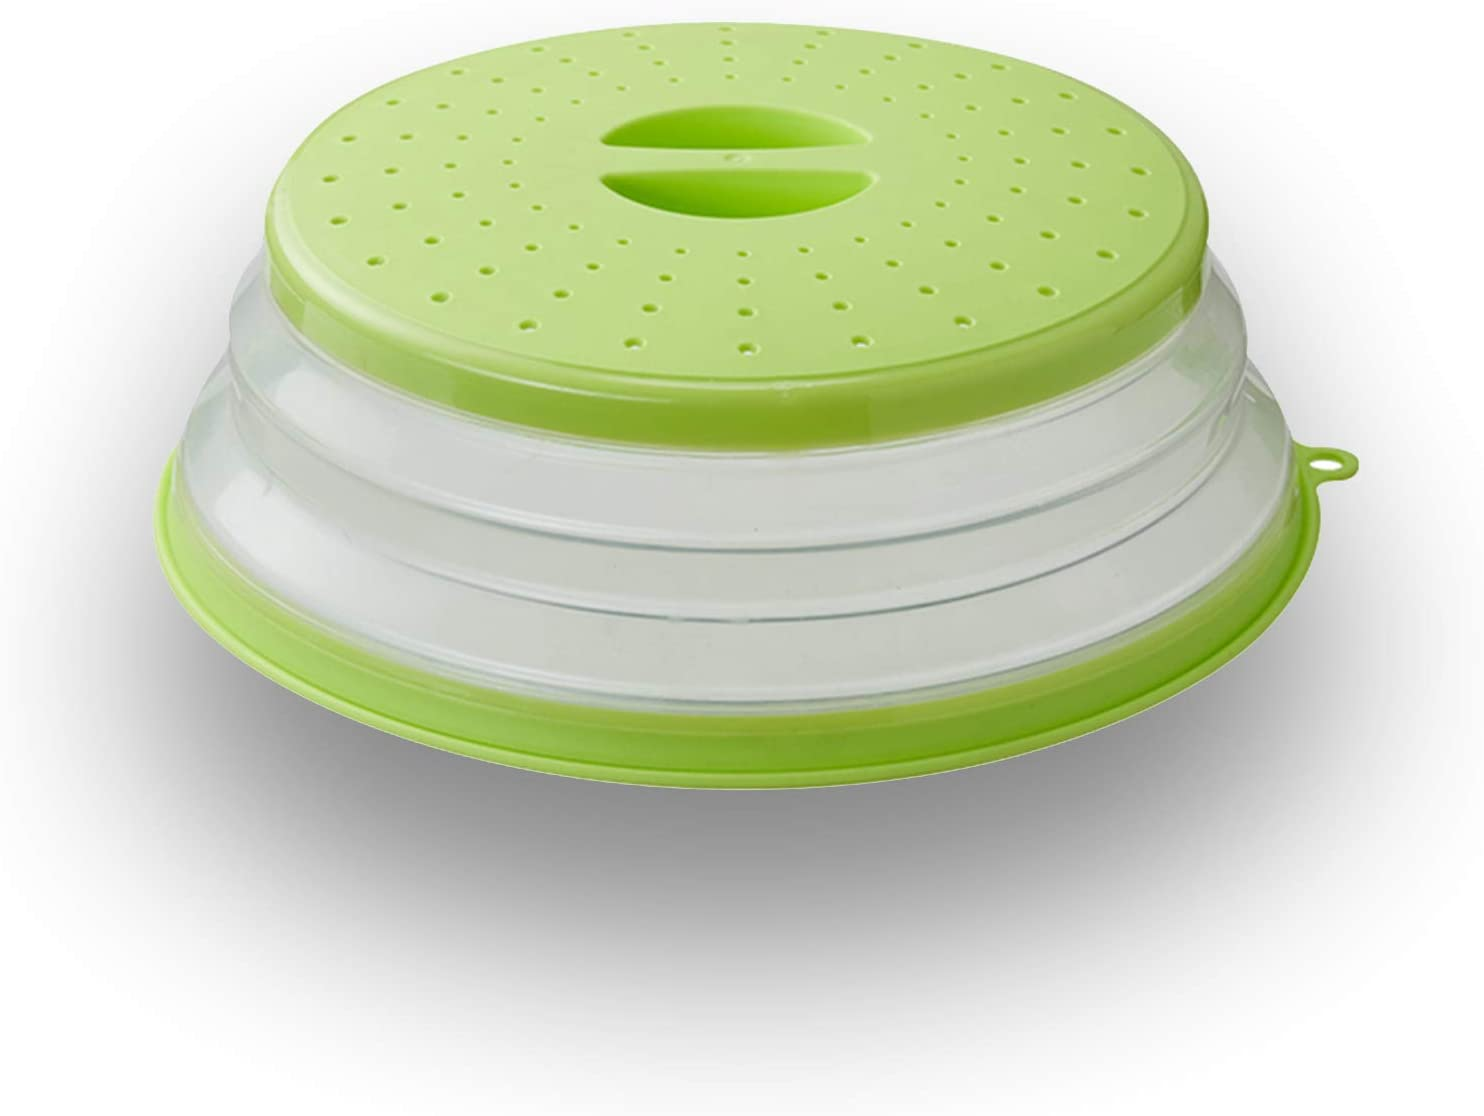 WENWELL Vented Collapsible Microwave Splatter Cover for Food,Kitchen dish bowl Plate lid Can be Hung,Dishwasher-Safe,Fruit Drainer Basket,BPA-Free Silicone & Plastic,Green